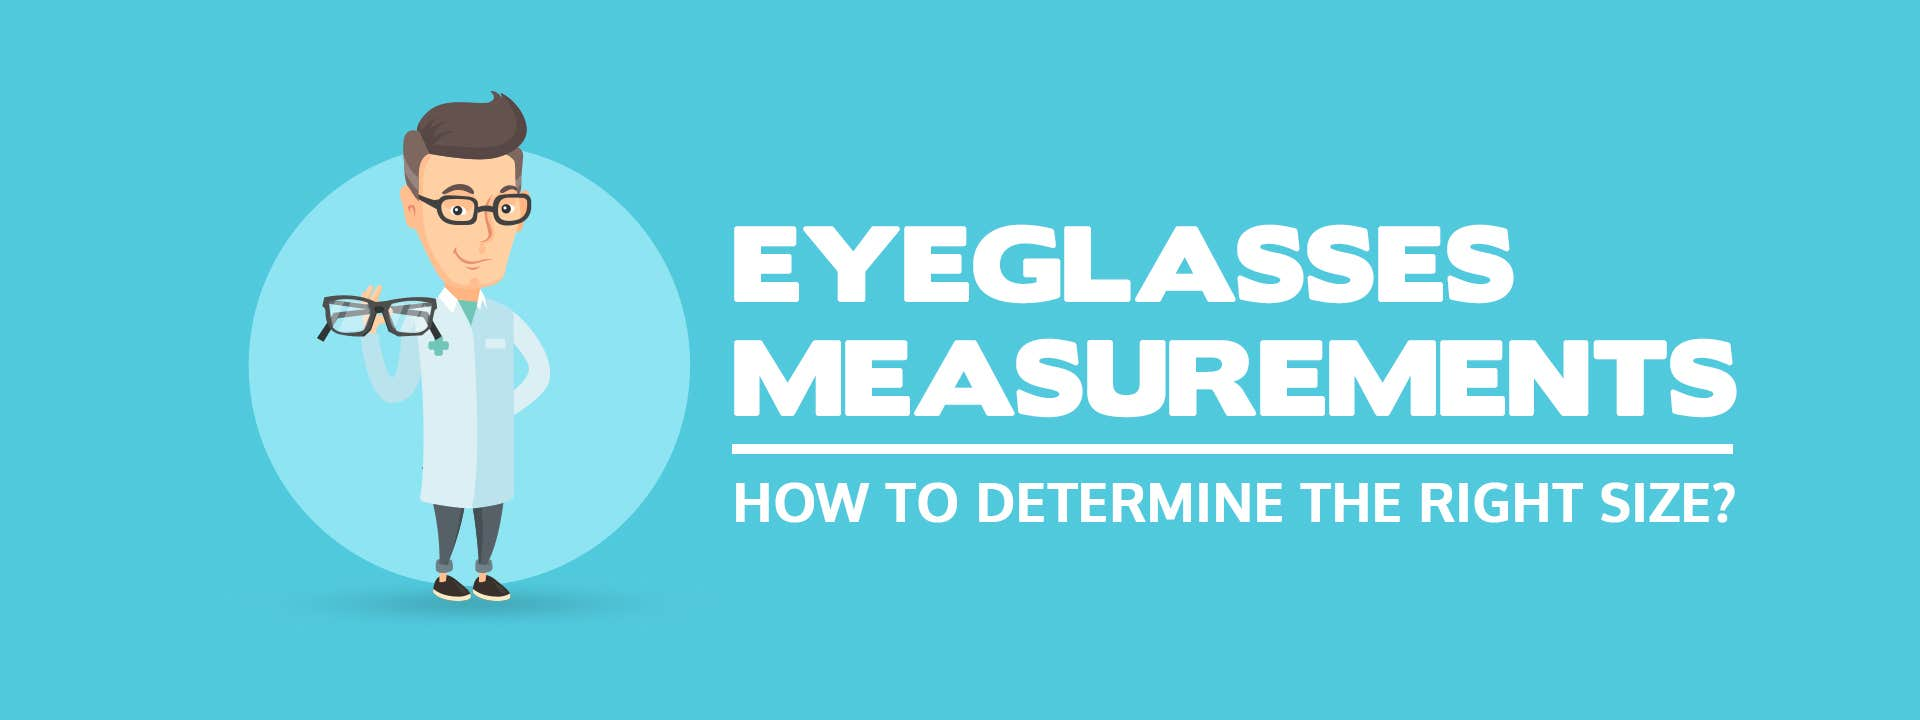 Eyeglasses Measurements - How To Determine The Right Size